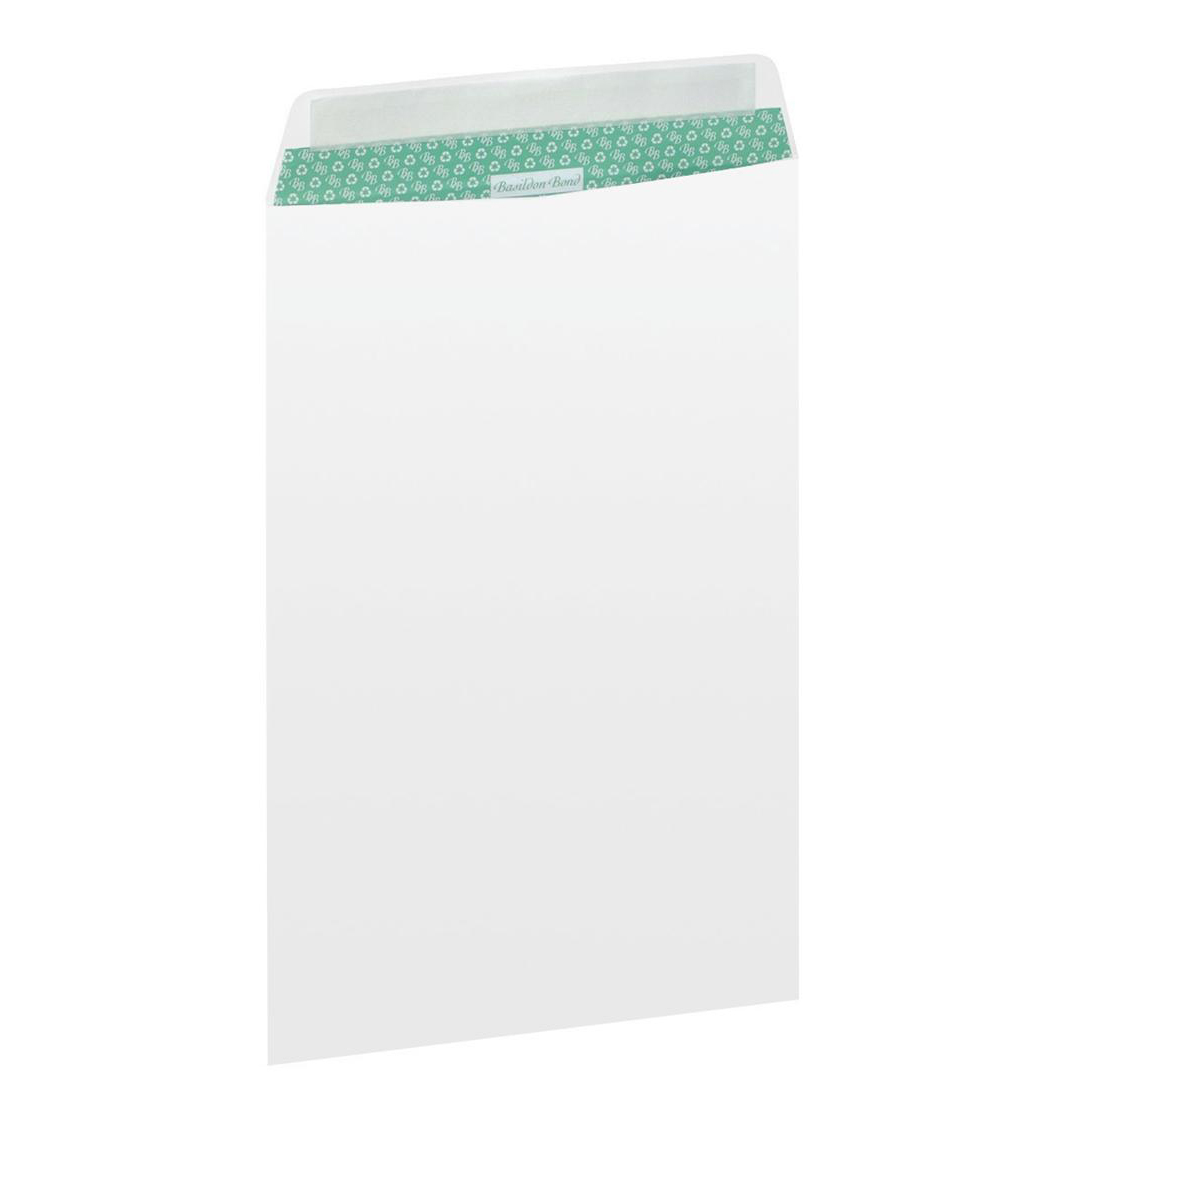 Basildon Bond Envelopes FSC Recycled Pocket Peel & Seal Wdw 120gsm C4 324x229mm Whte Ref B80285 Pack 50